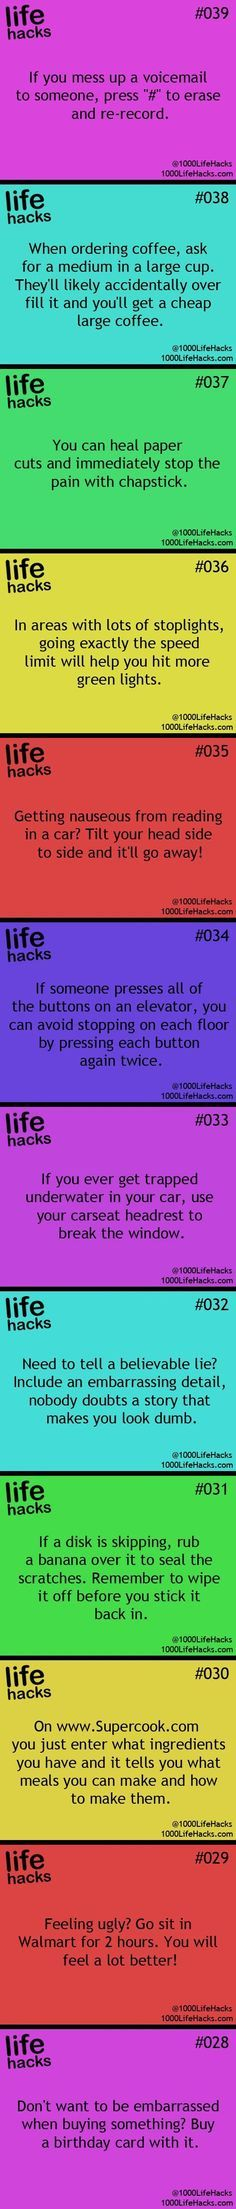 25 Useful Life Hacks